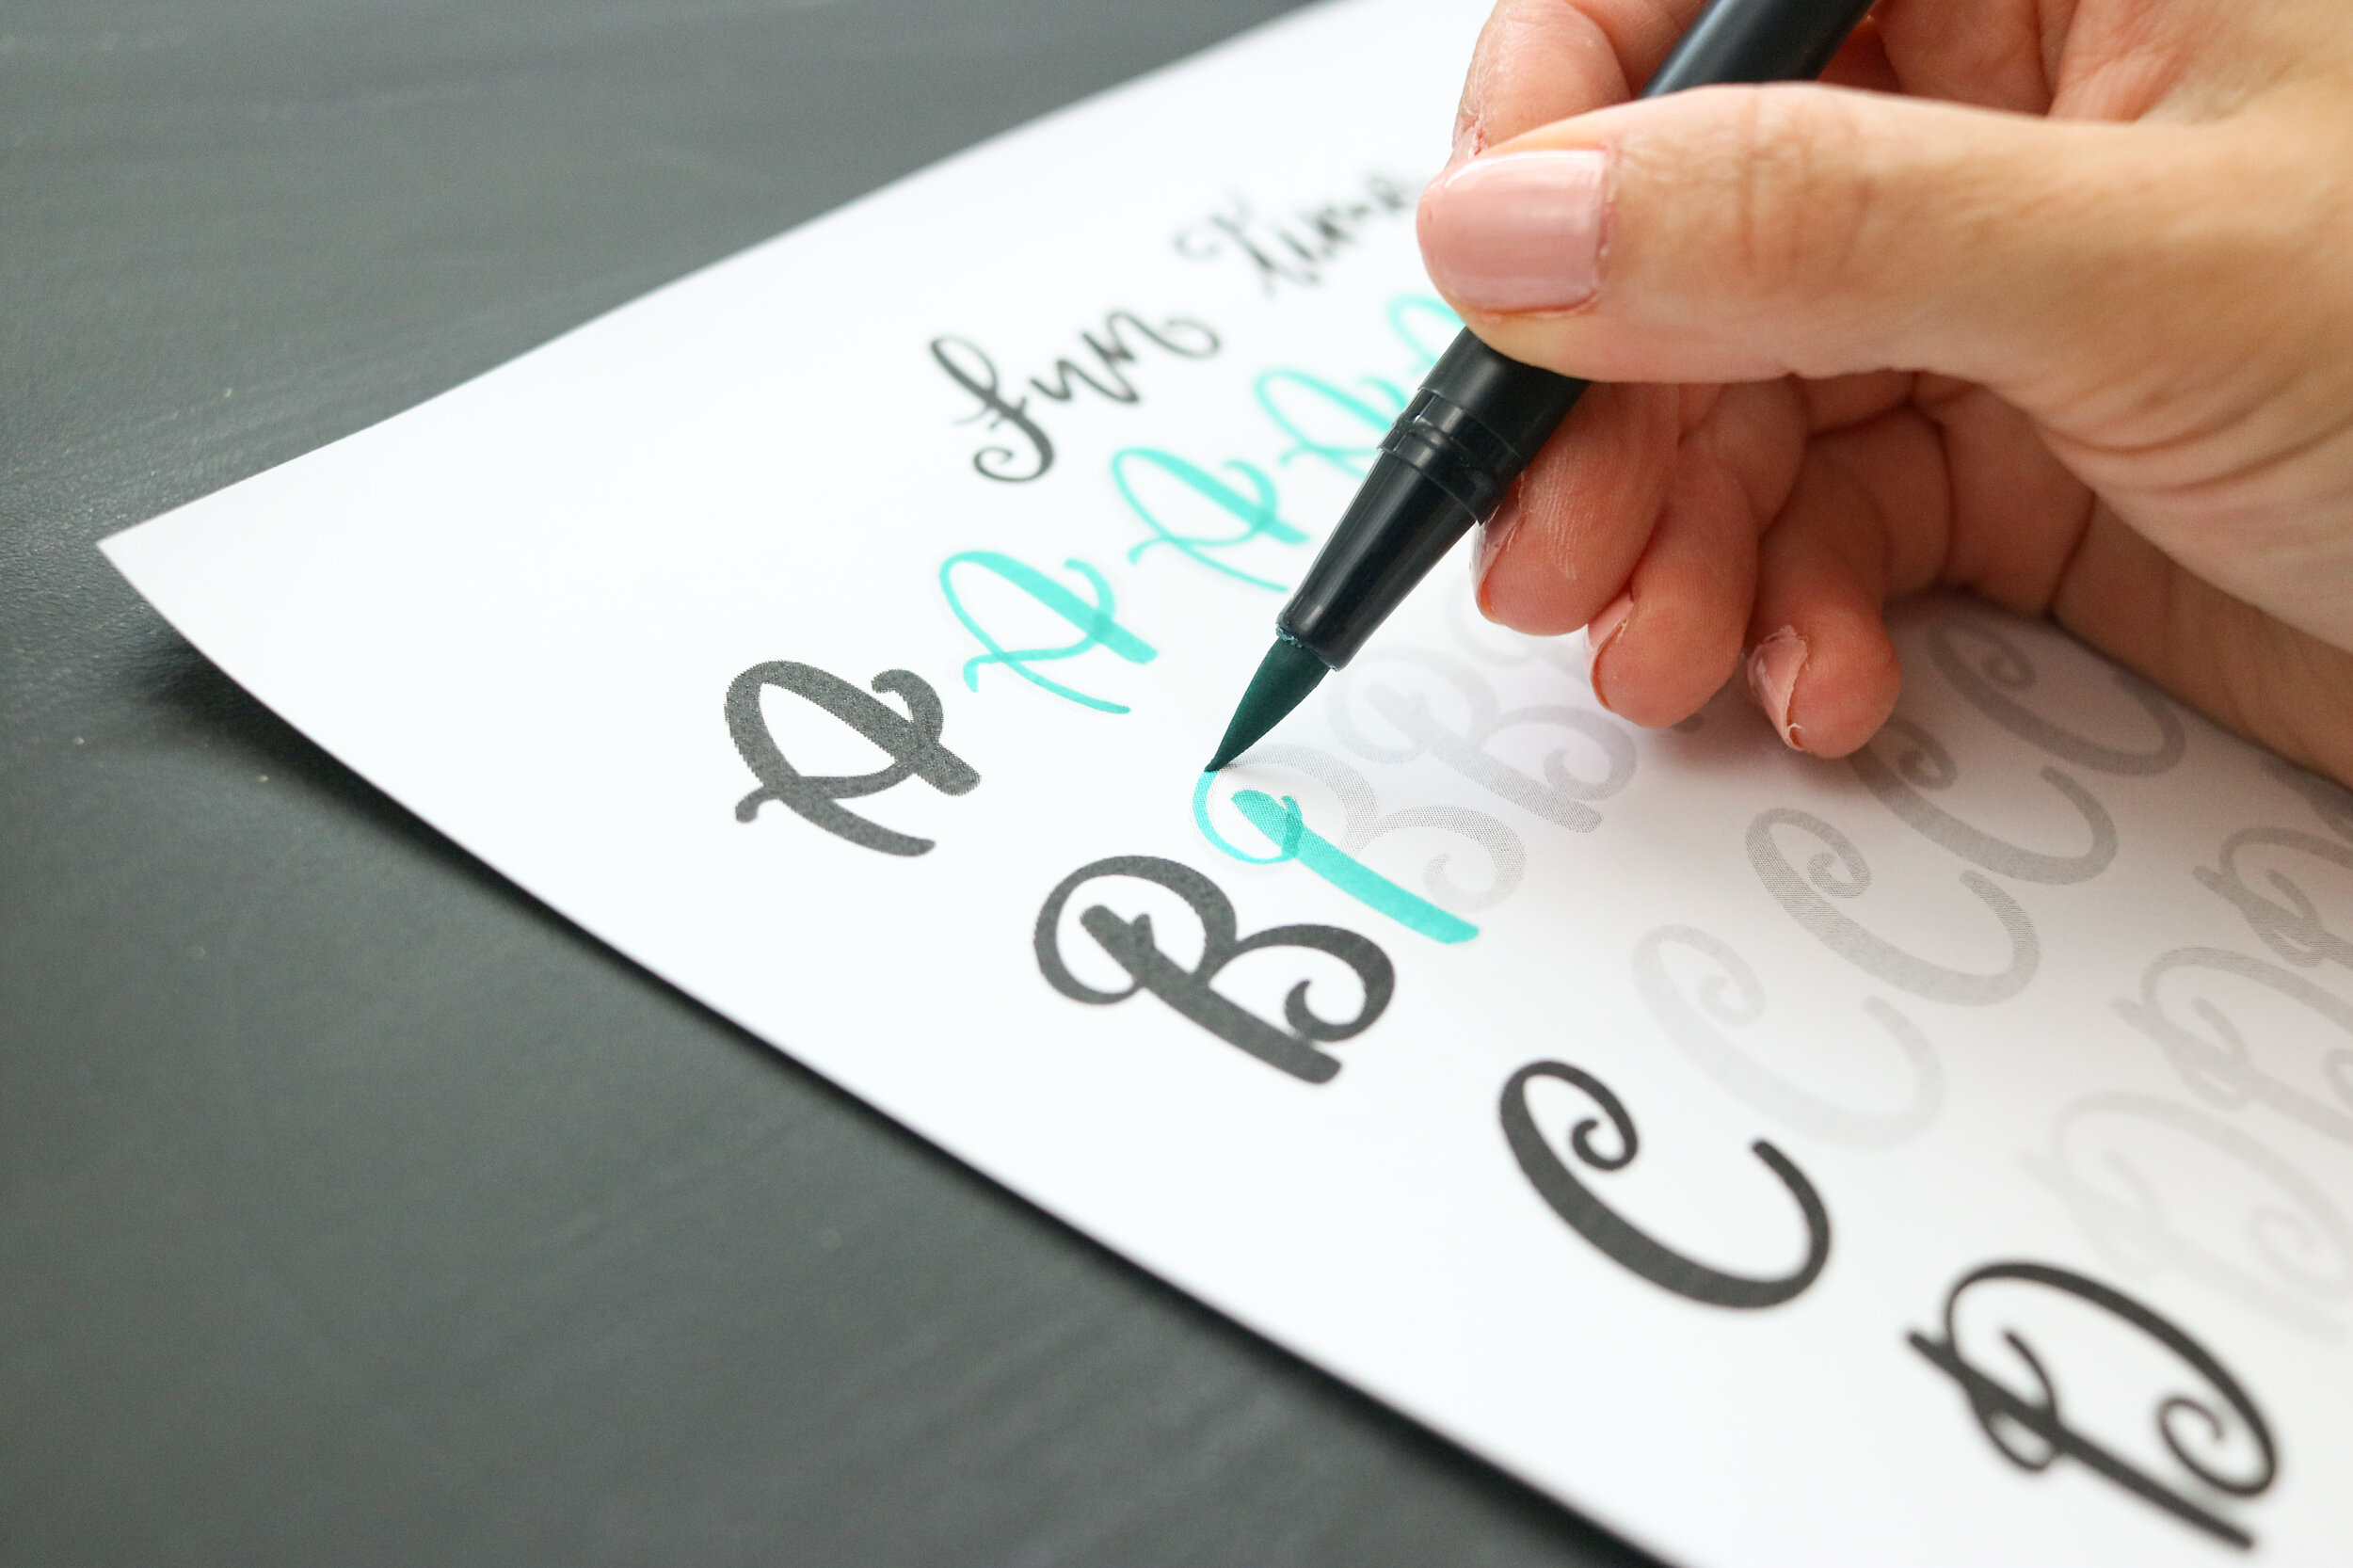 Using a Tombow dual brush pen on new Fun Time lettering worksheets